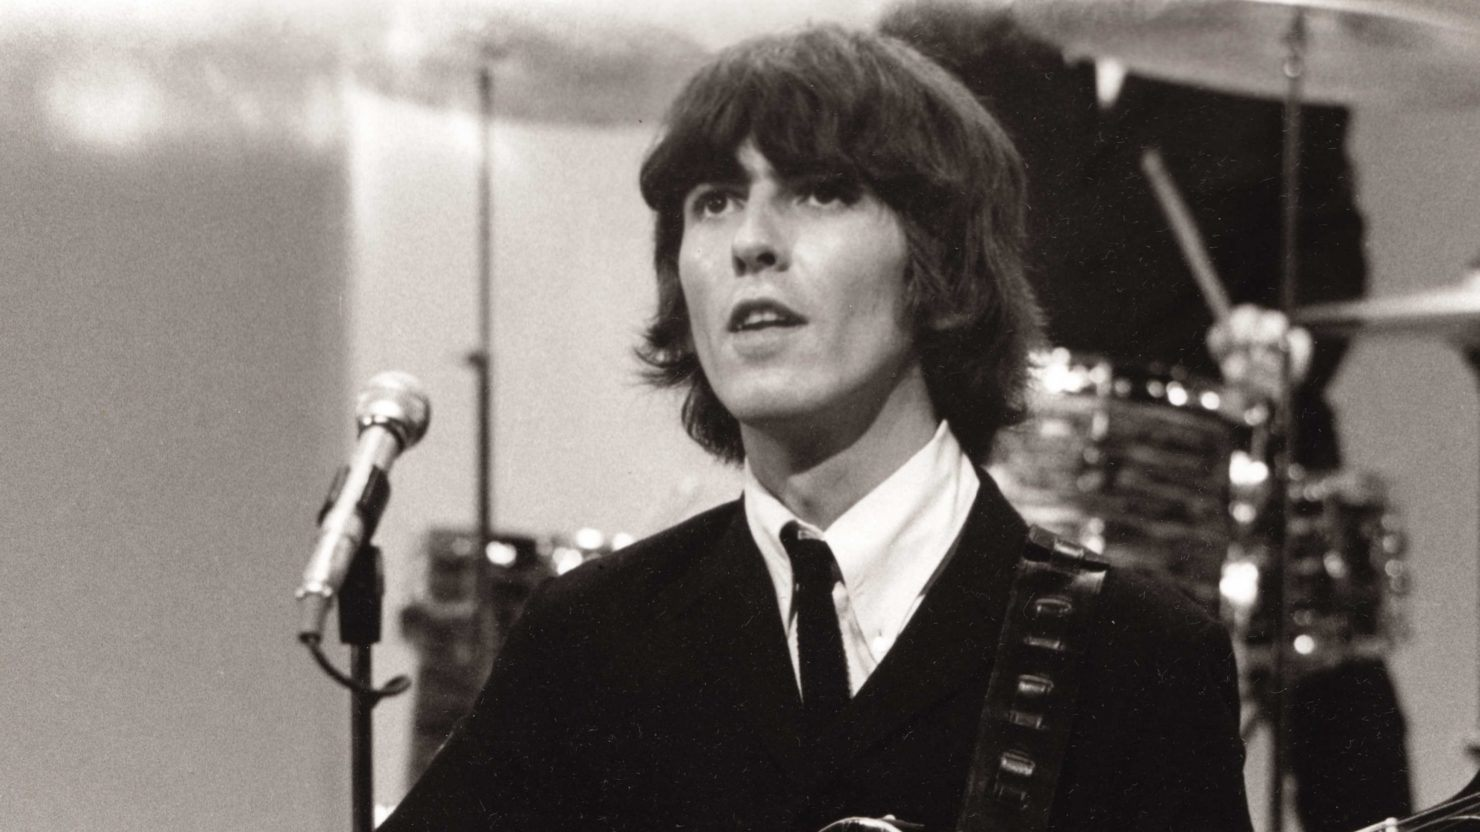 Happy birthday george harrison performing live spotify for The harrison